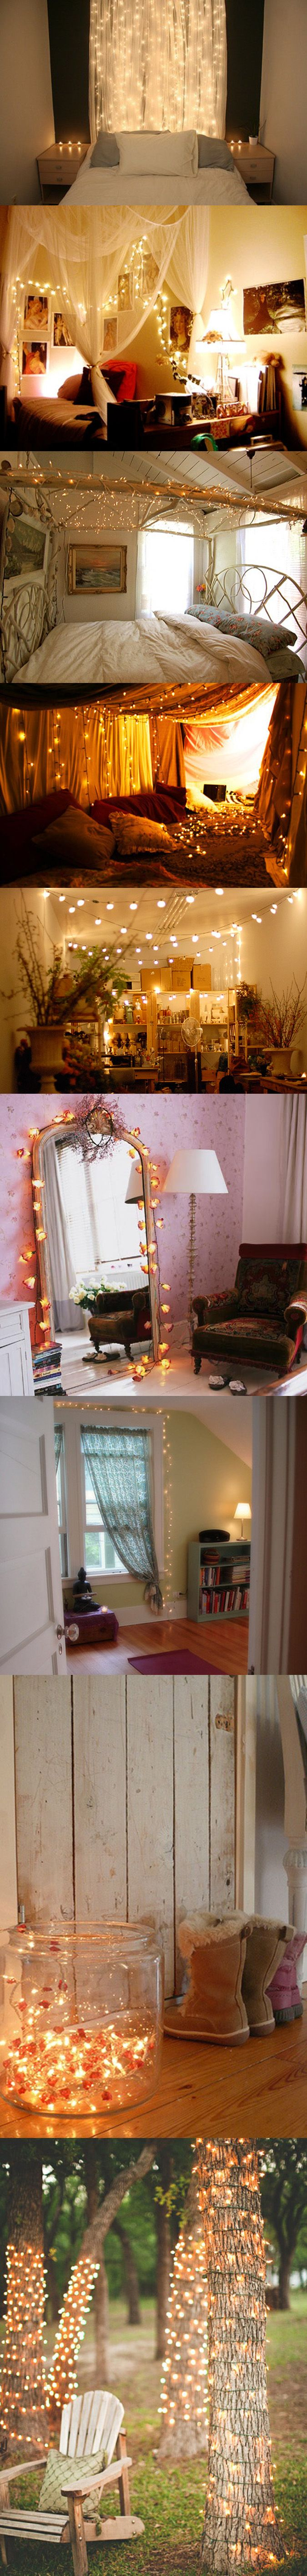 265 best for the home images on pinterest projects home and diy